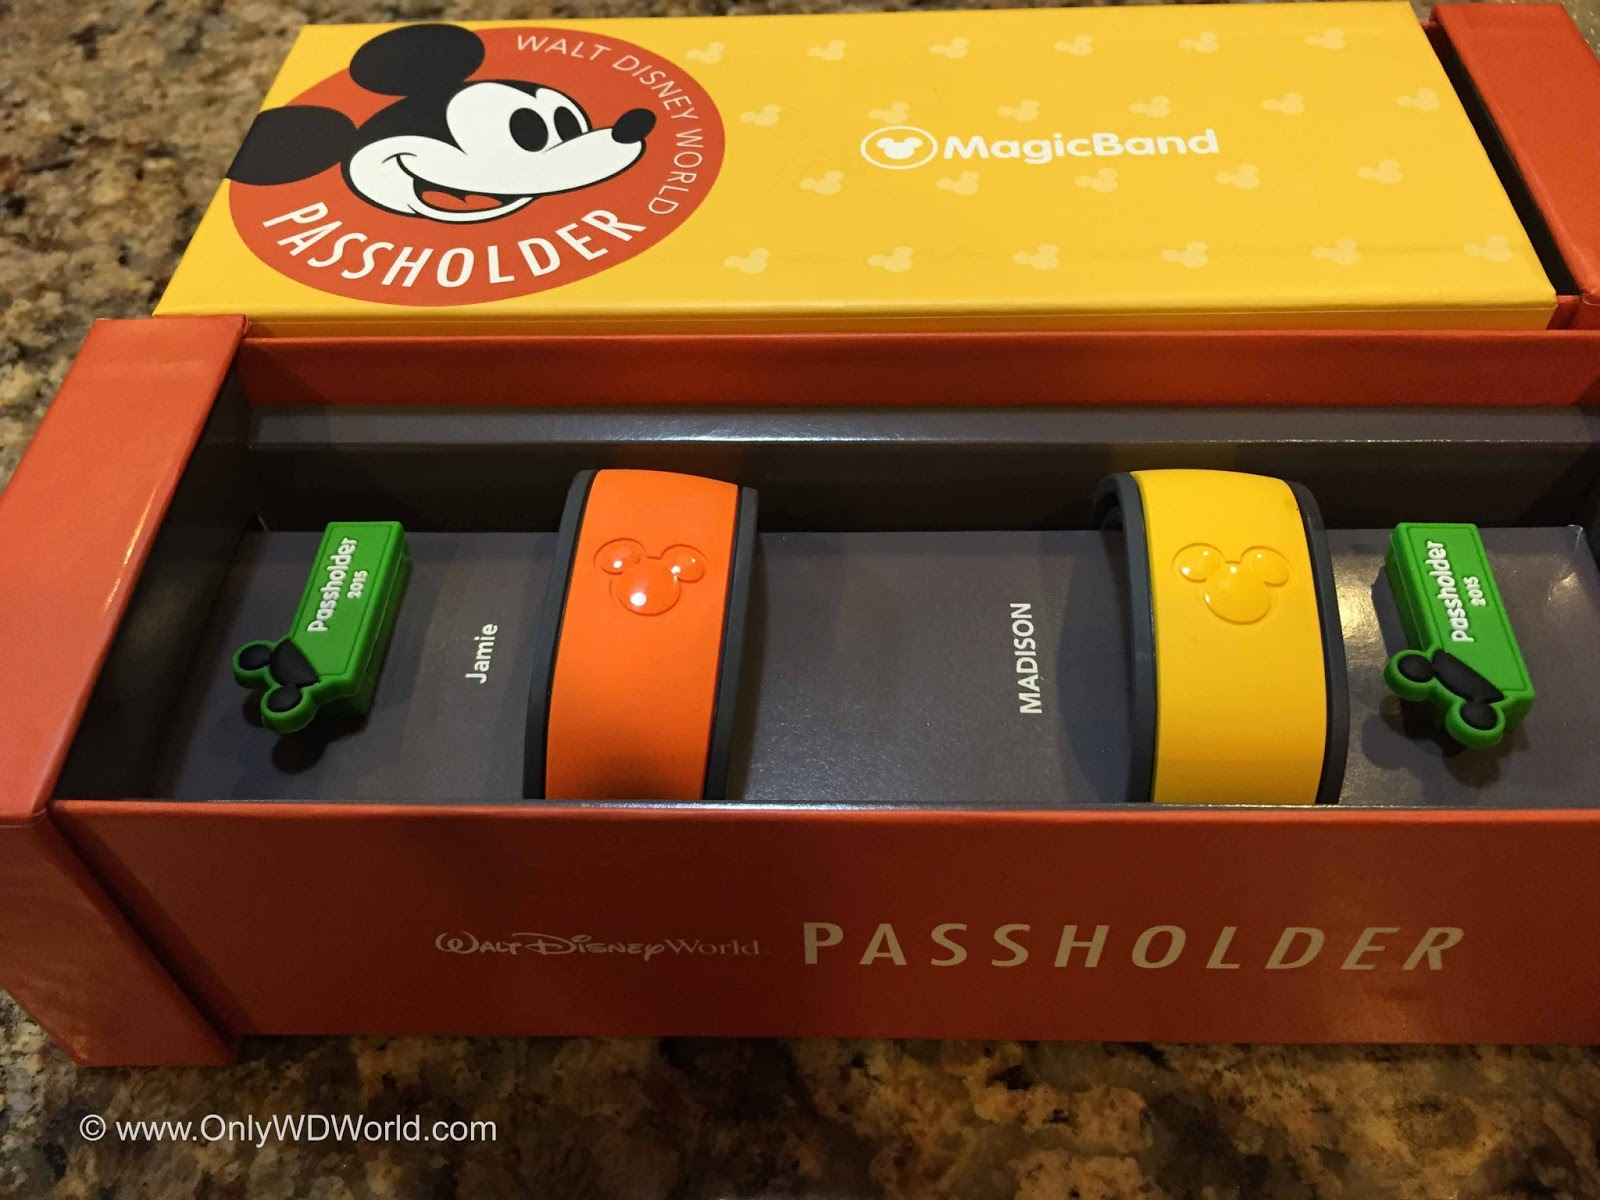 Annual Passholders can enjoy a stay right in the middle of the holiday magic with special Passholder rates as low as $95 per night, plus tax for a stay in a standard room at Disney's Pop Century Resort most Monday through Wednesday nights November 5 through November 14 and November 26 through December 5,